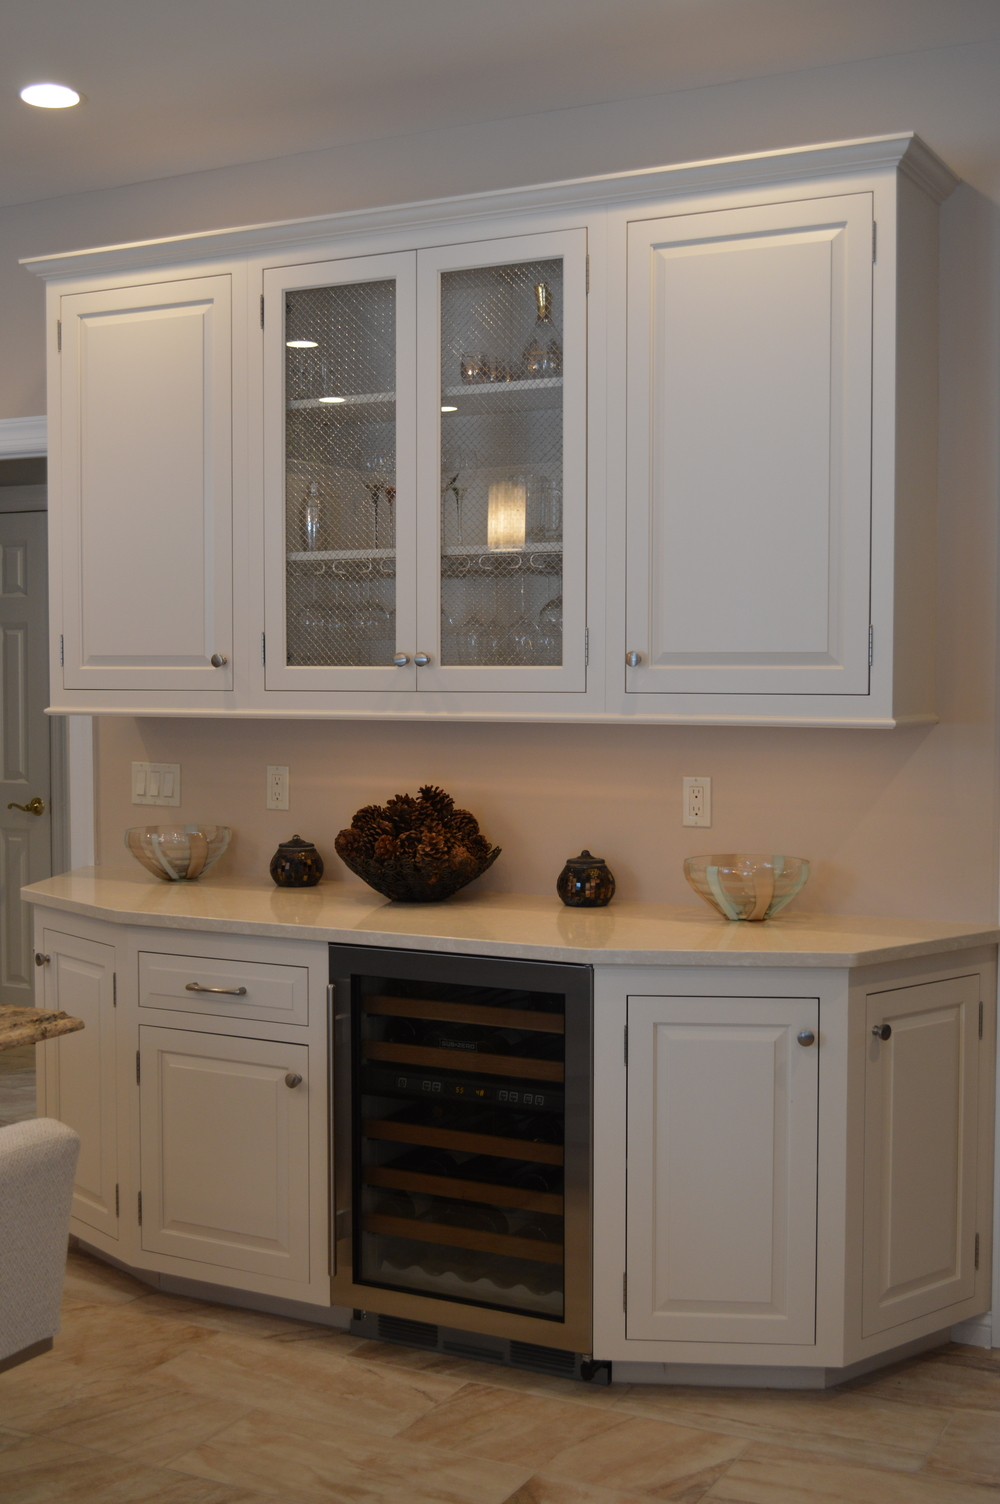 Classic meets modern modern custom cabinets ackley for Angled corner kitchen cabinets